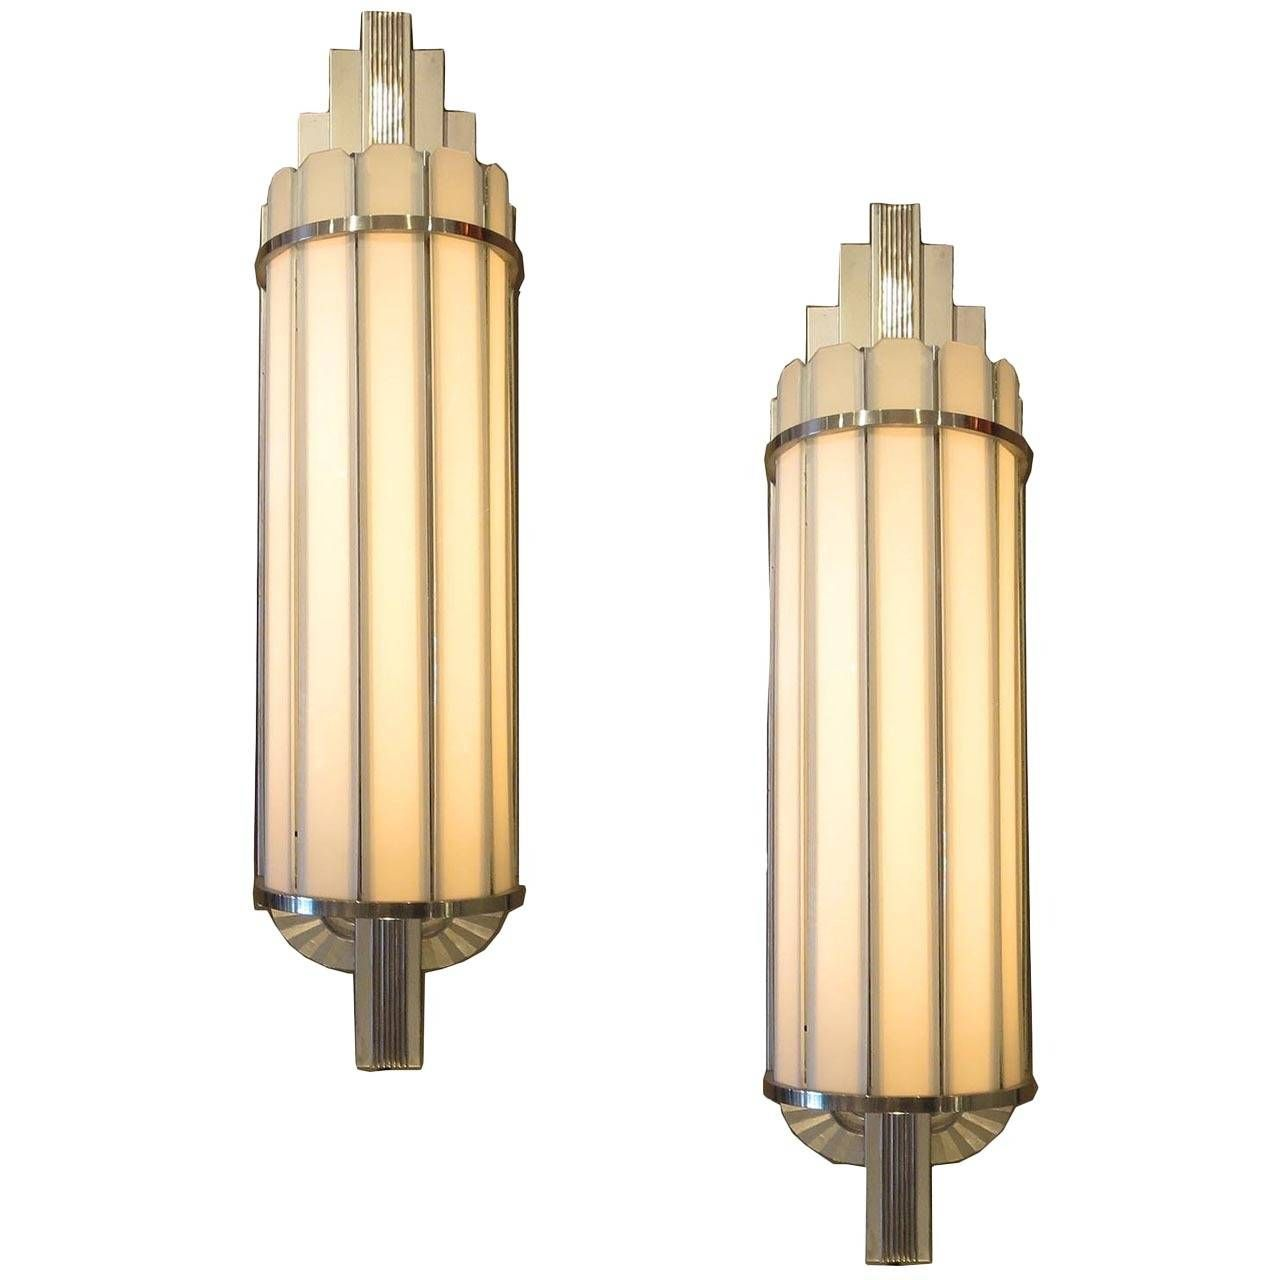 Art Deco Wall Sconce Light Fixtures : Art Deco Large Theater Wall Sconces Large, Art deco and Of